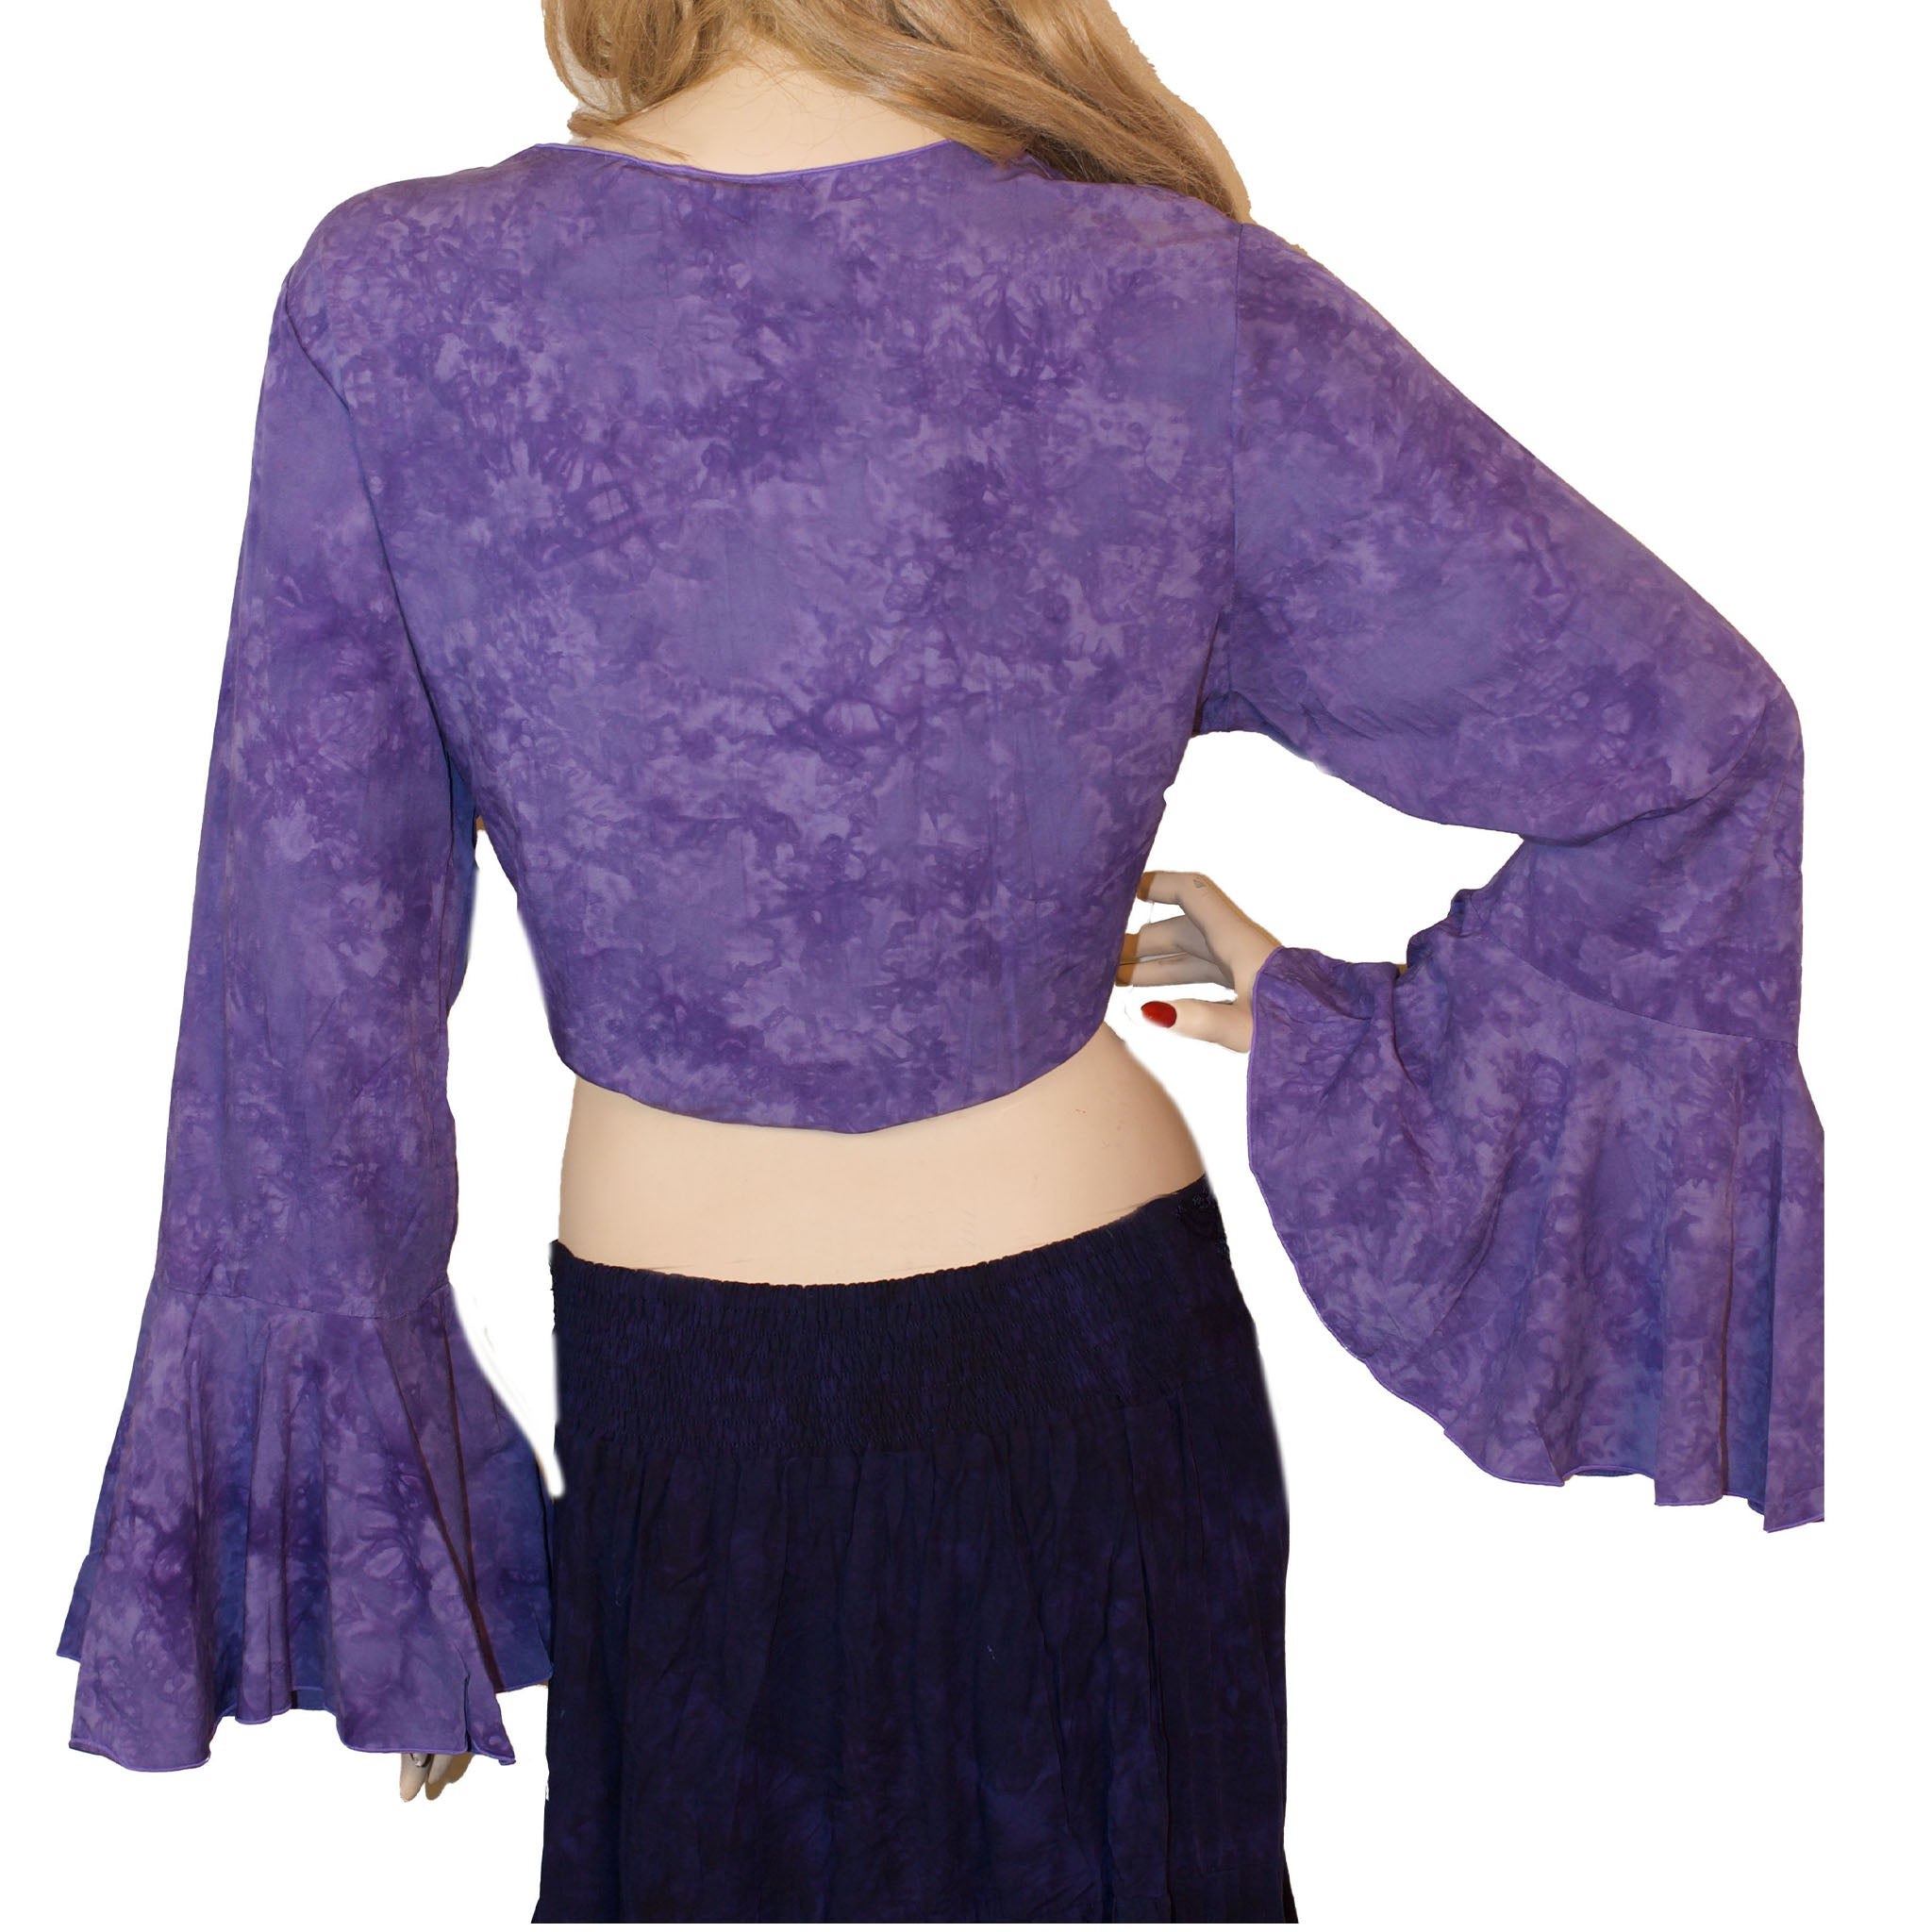 Womans Gypsy Top Renaissance Top Belly Dance Top Back view